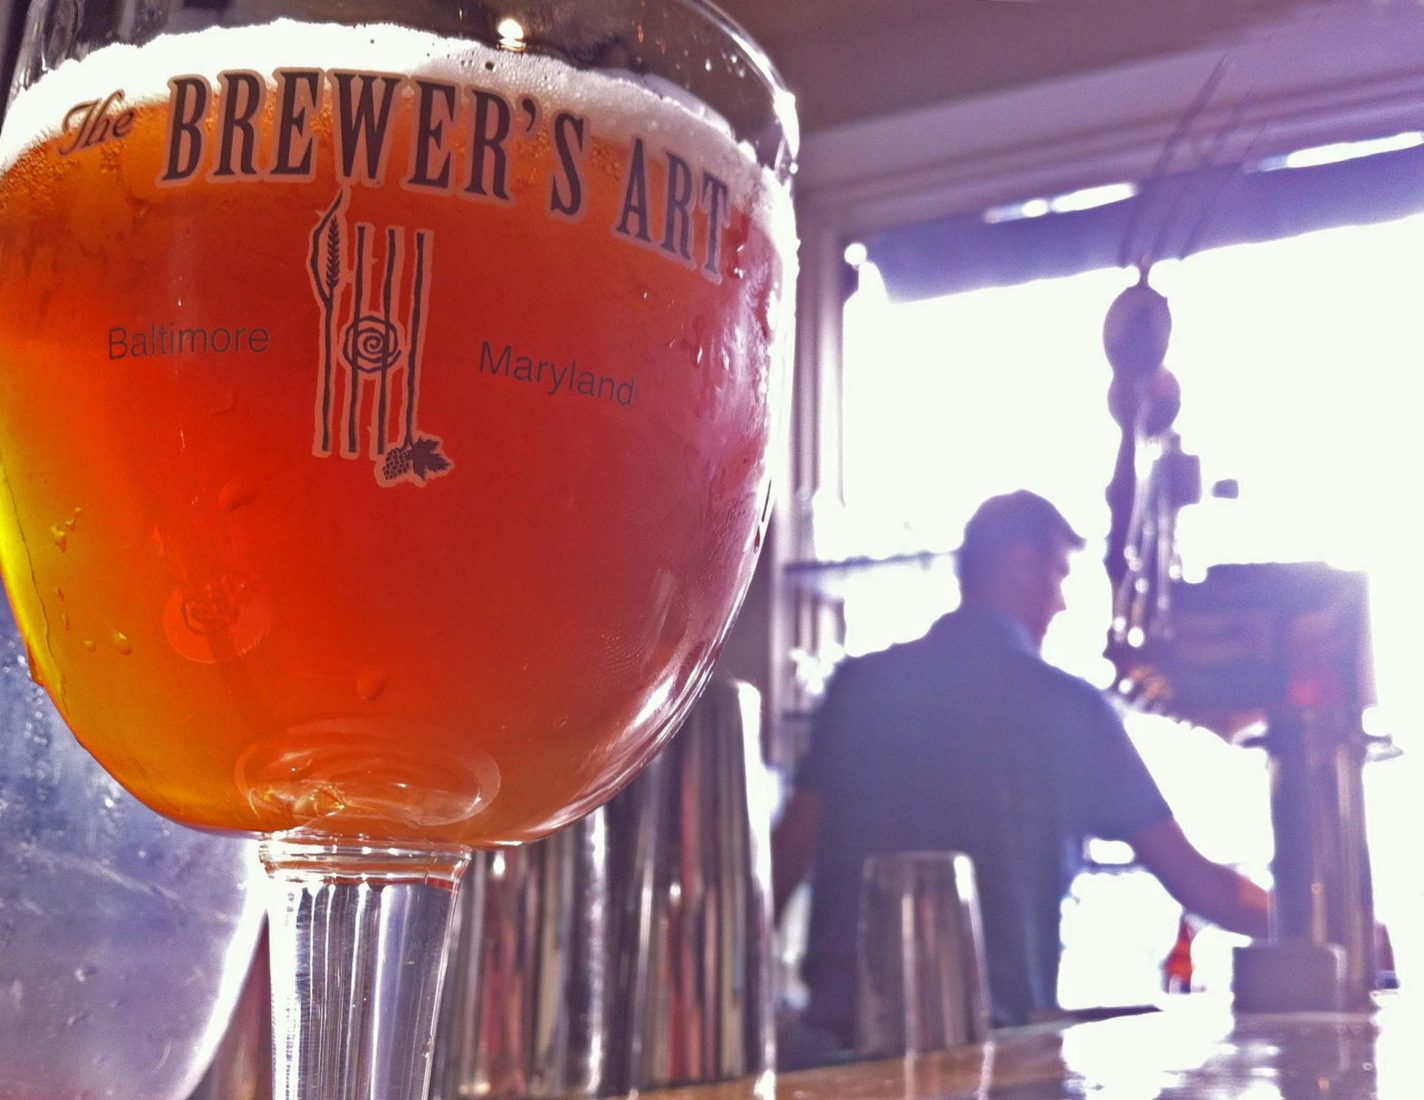 140. Brewer's Art, Baltimore MD 2012